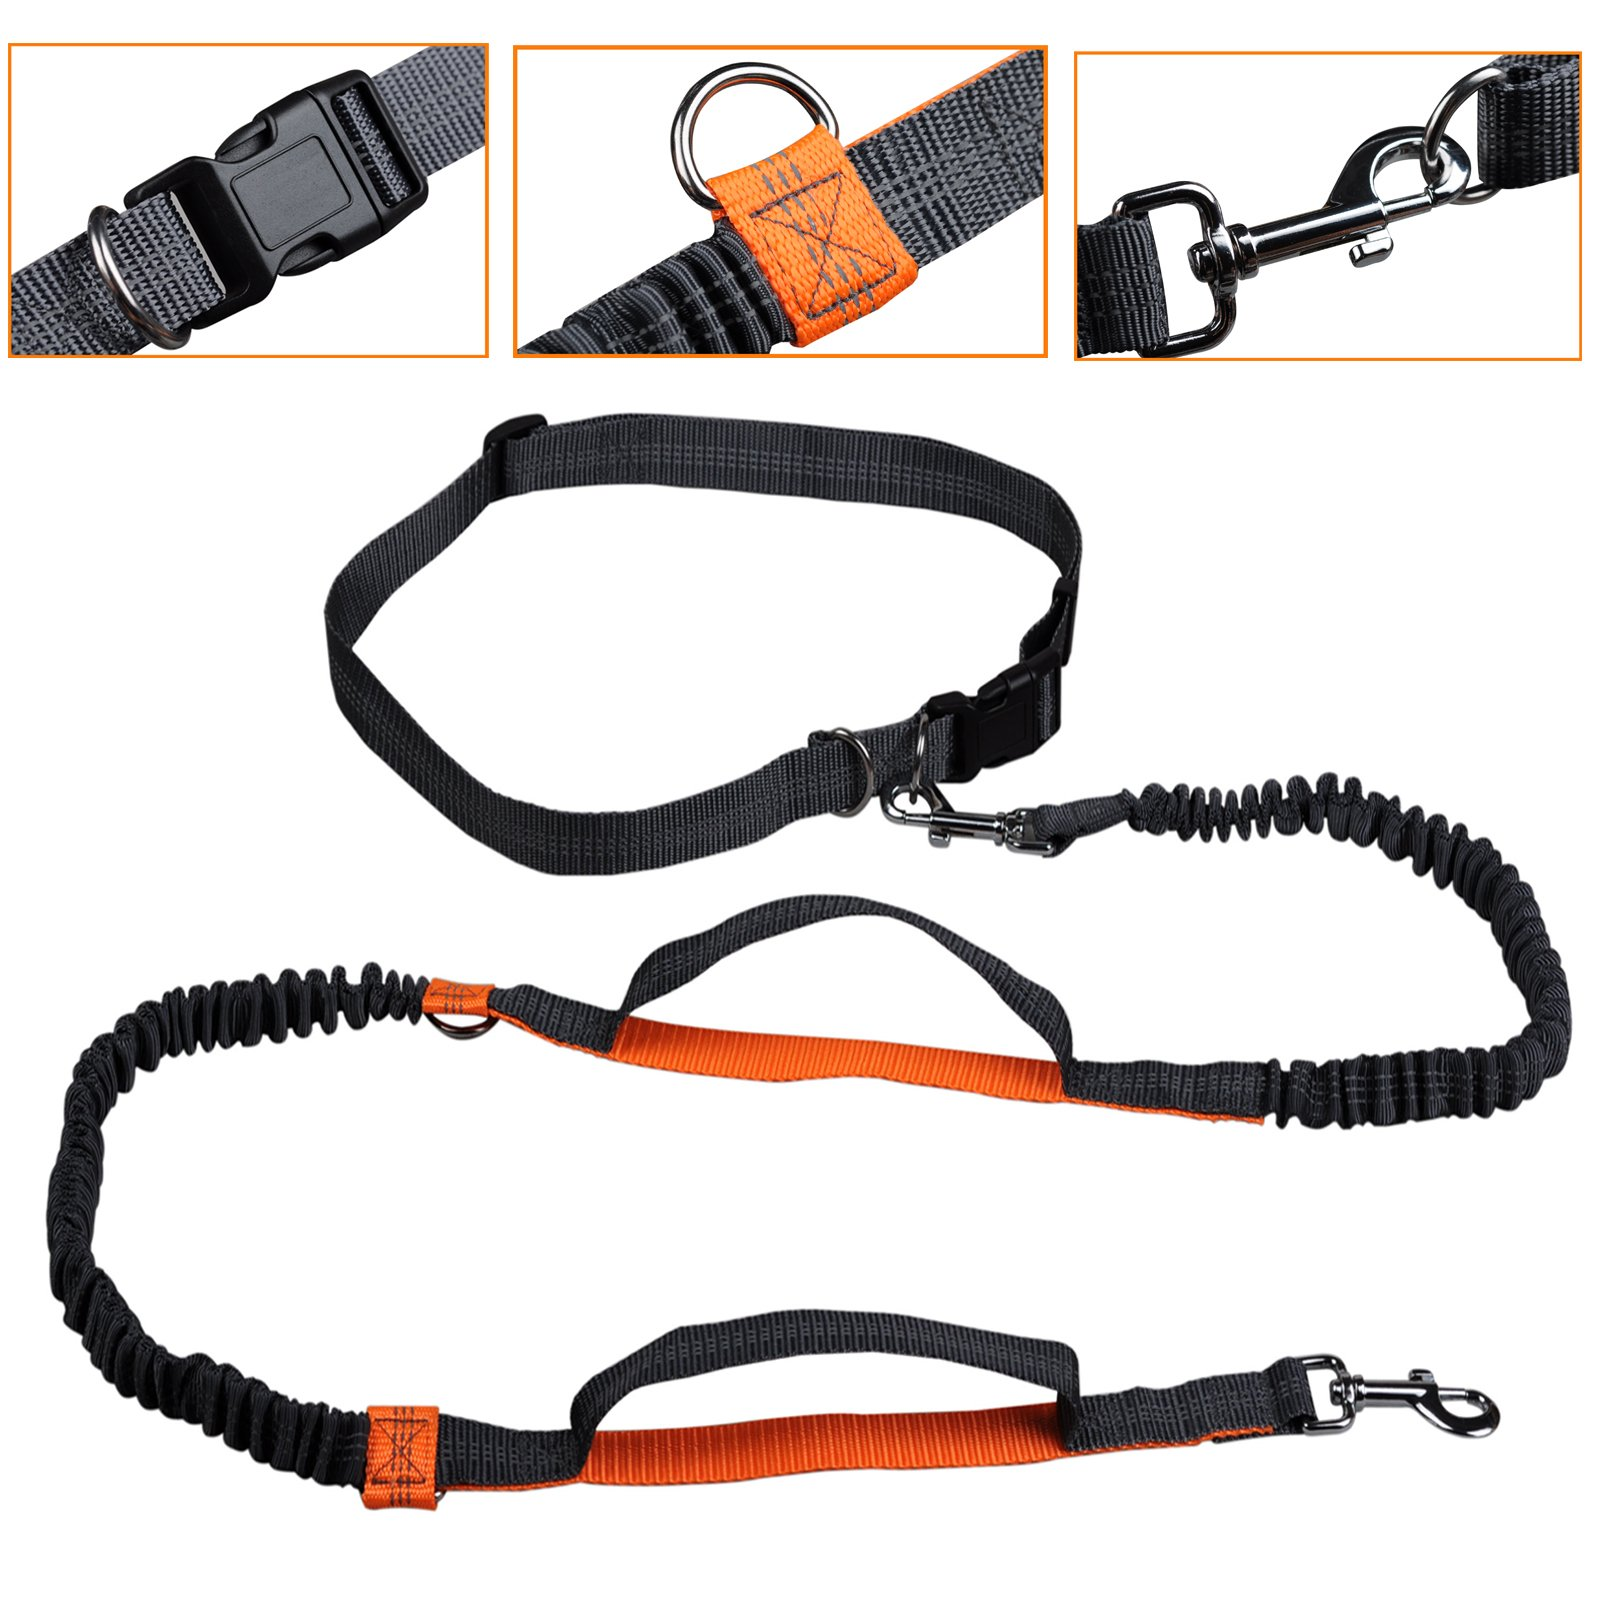 Retractable Hands Free Dog Leash, Dual-Handle Bungee Extendable Shock Absorbing Leash Reflective Stitching Adjustable Waist Belt for For Running, Walking, Hiking, Dog Training Up to 150 lb Large Dogs